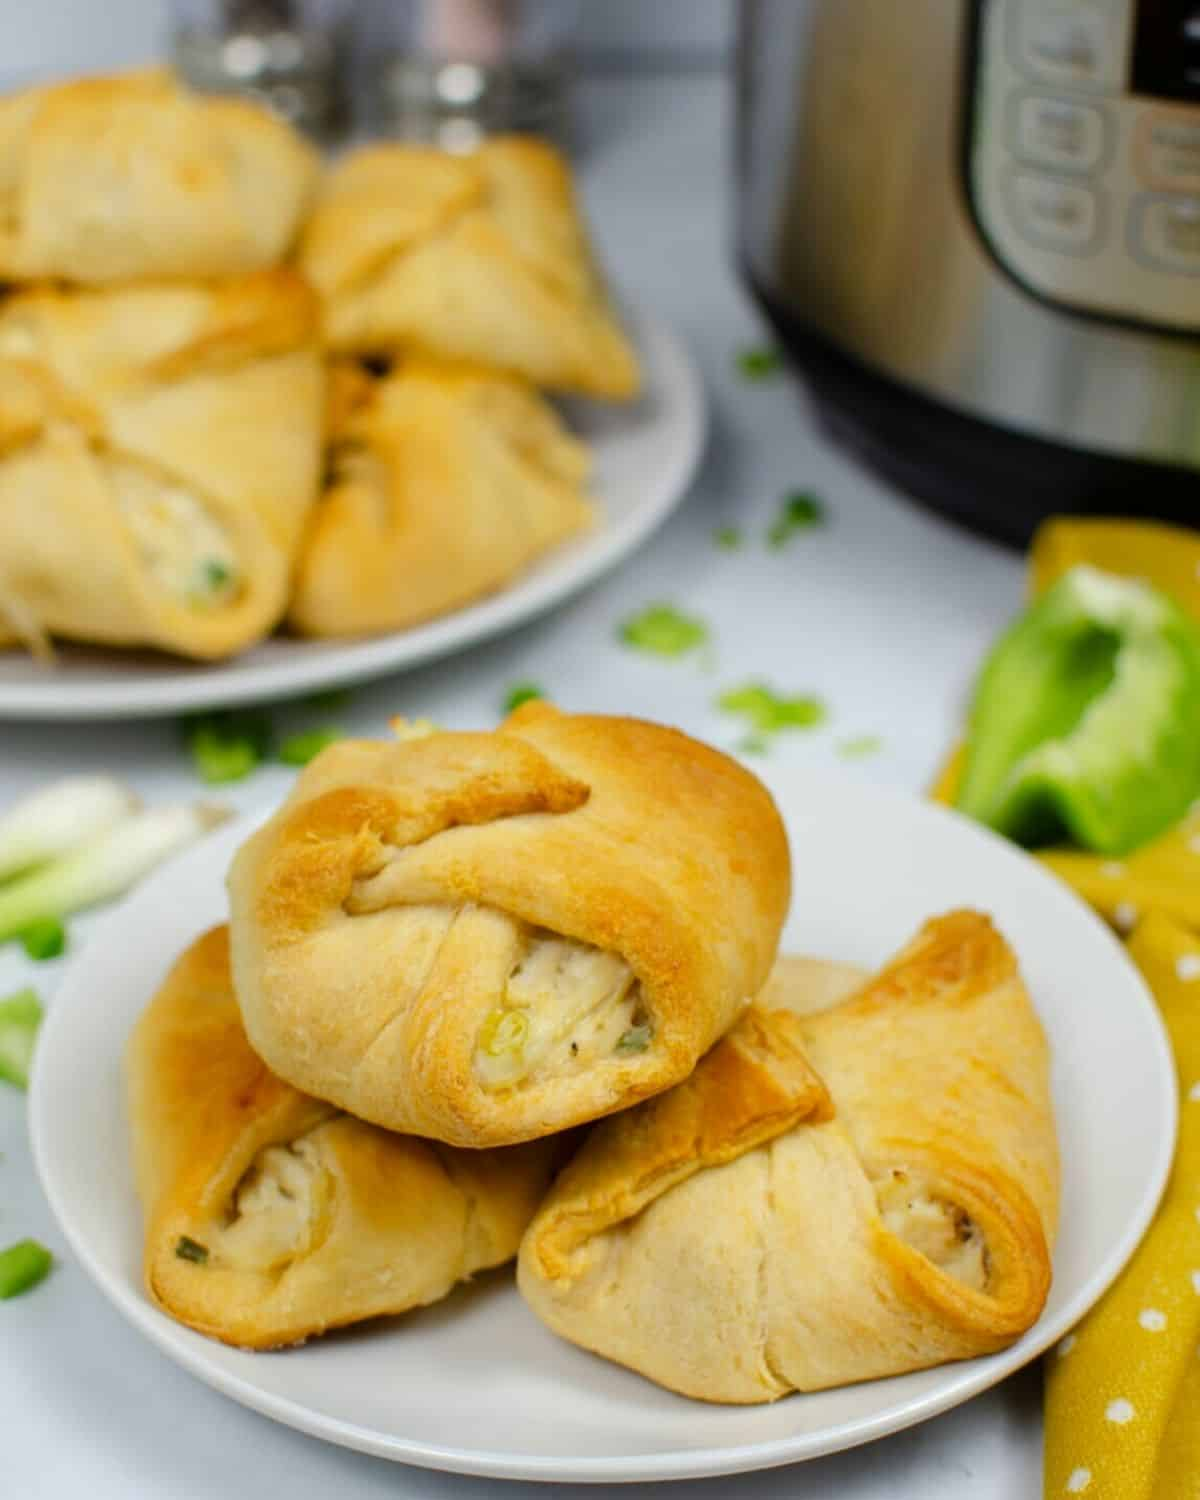 A large white plate with buttery crescent rolls stuffed with shredded chicken in a cream sauce.